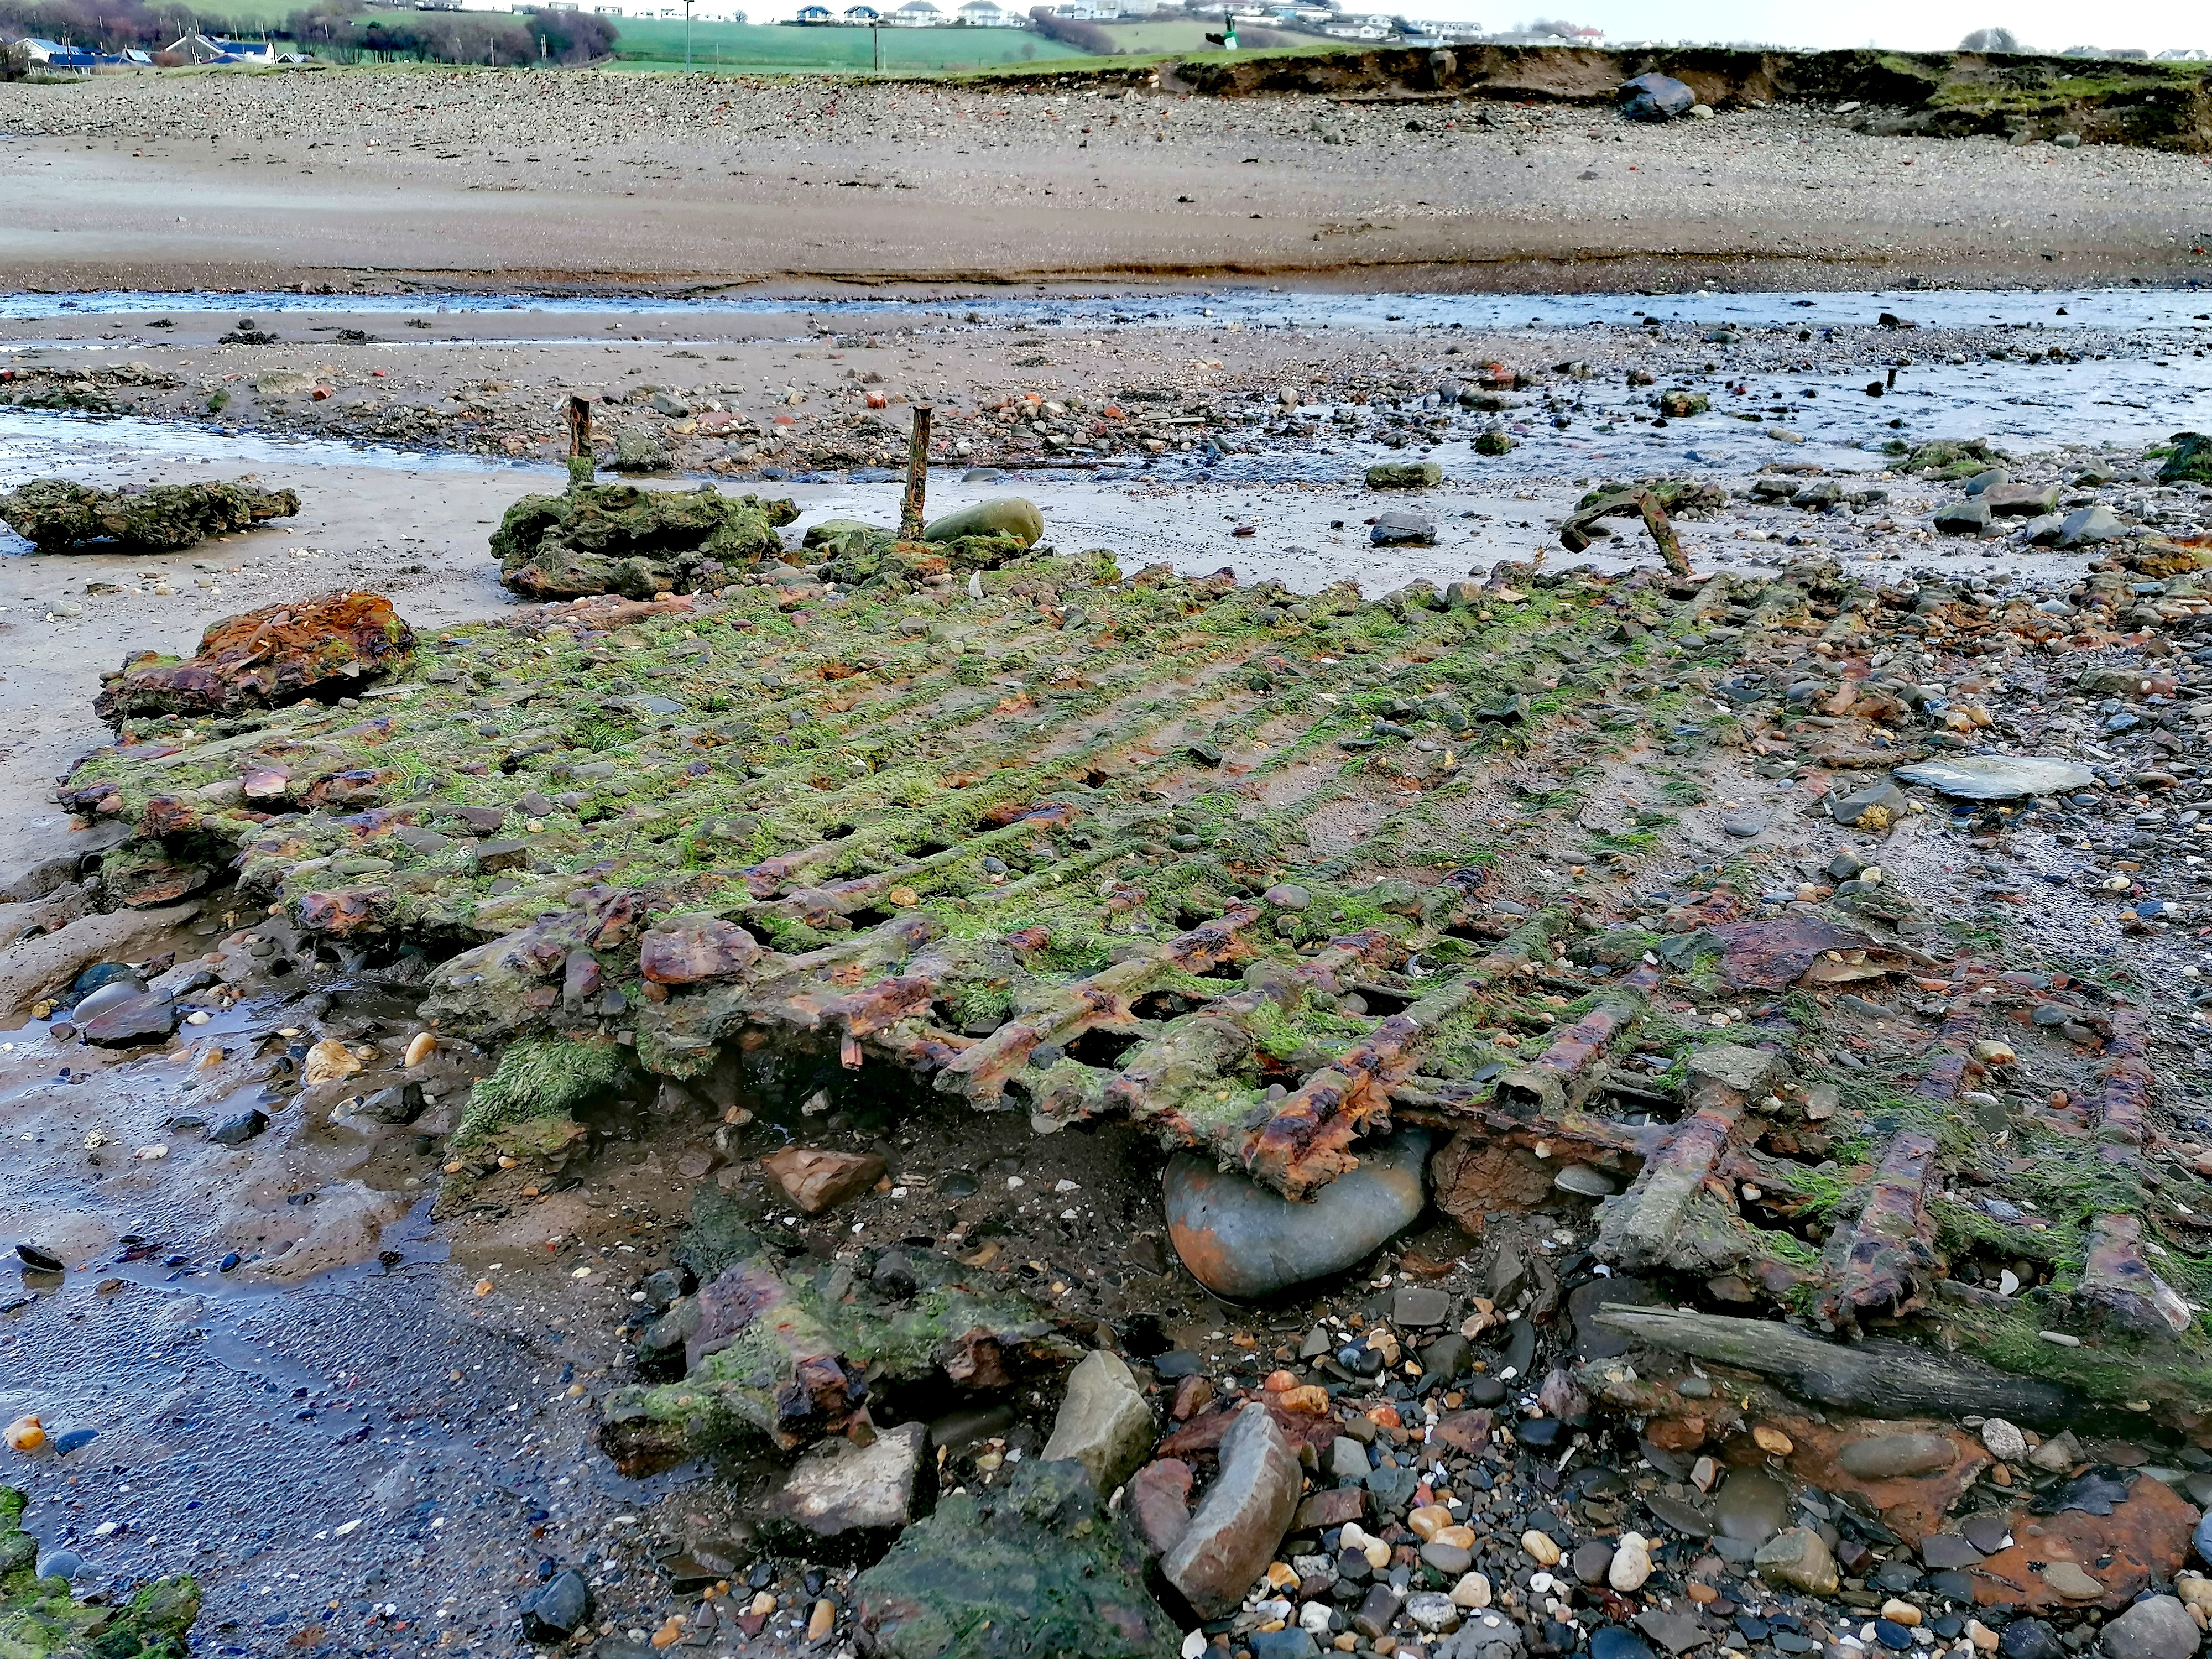 Northam Burrows, Skern, WWII, History Trail, Pebble Ridge,